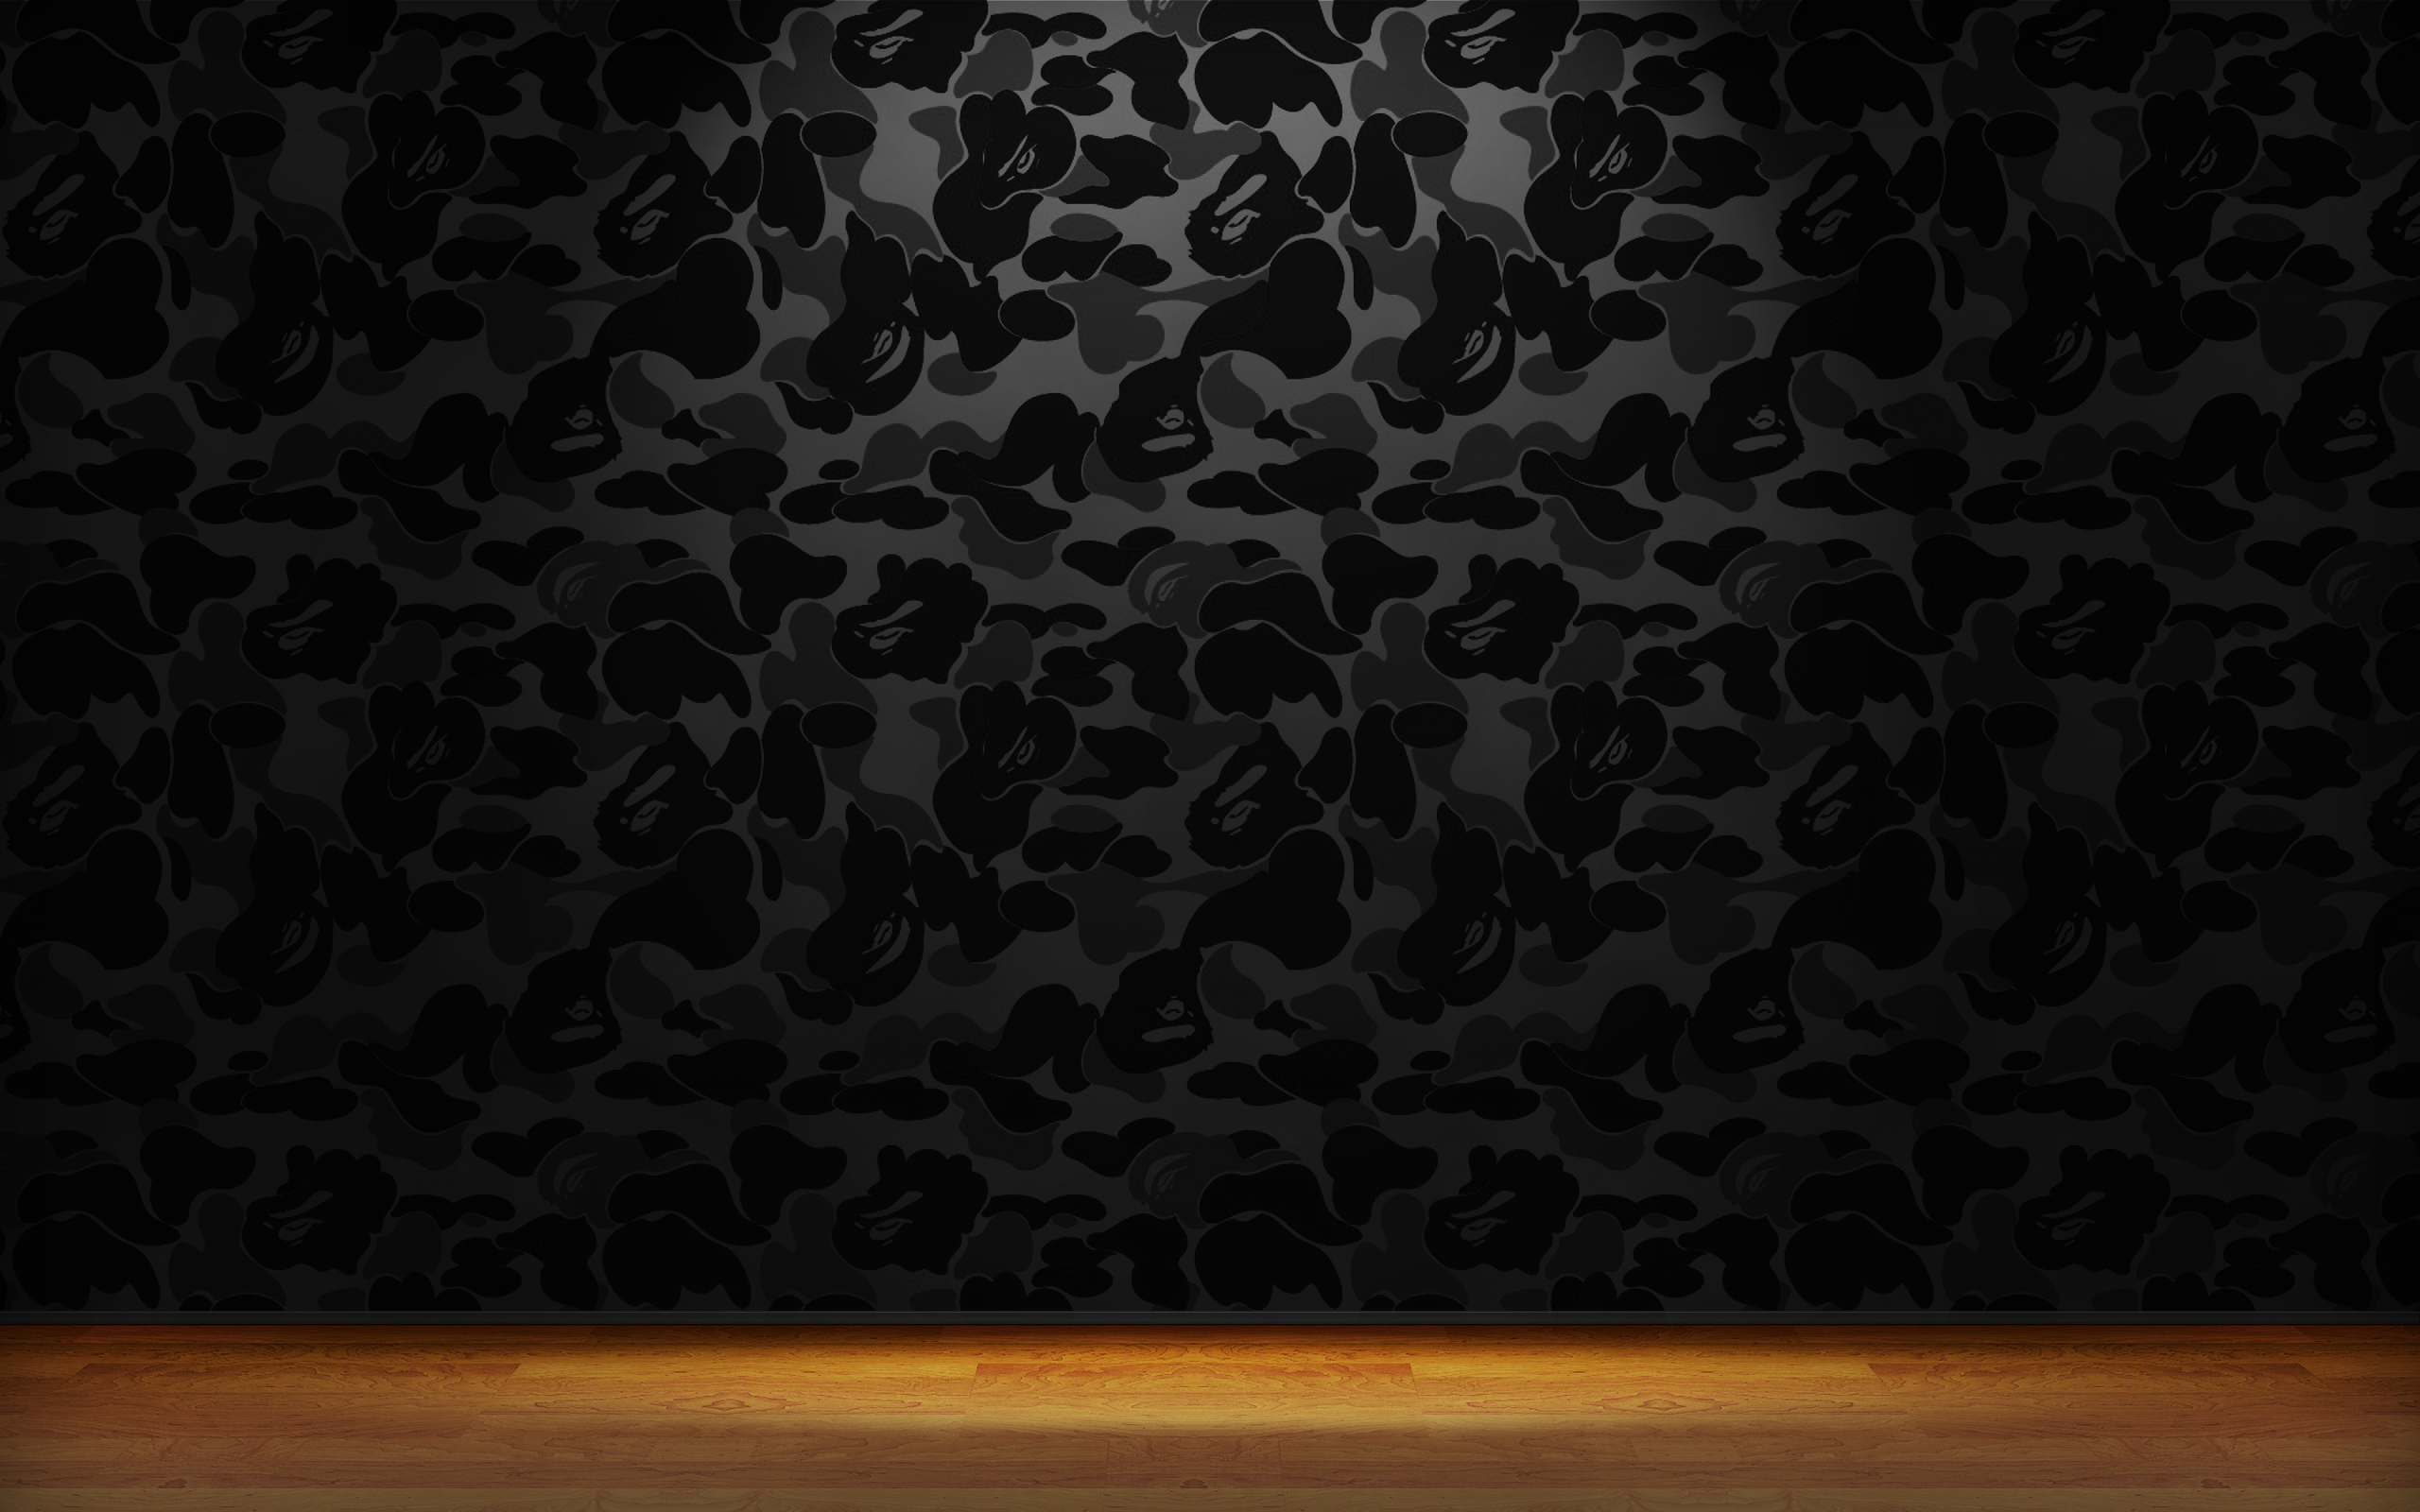 bape iphone wallpaper wallpapersafari